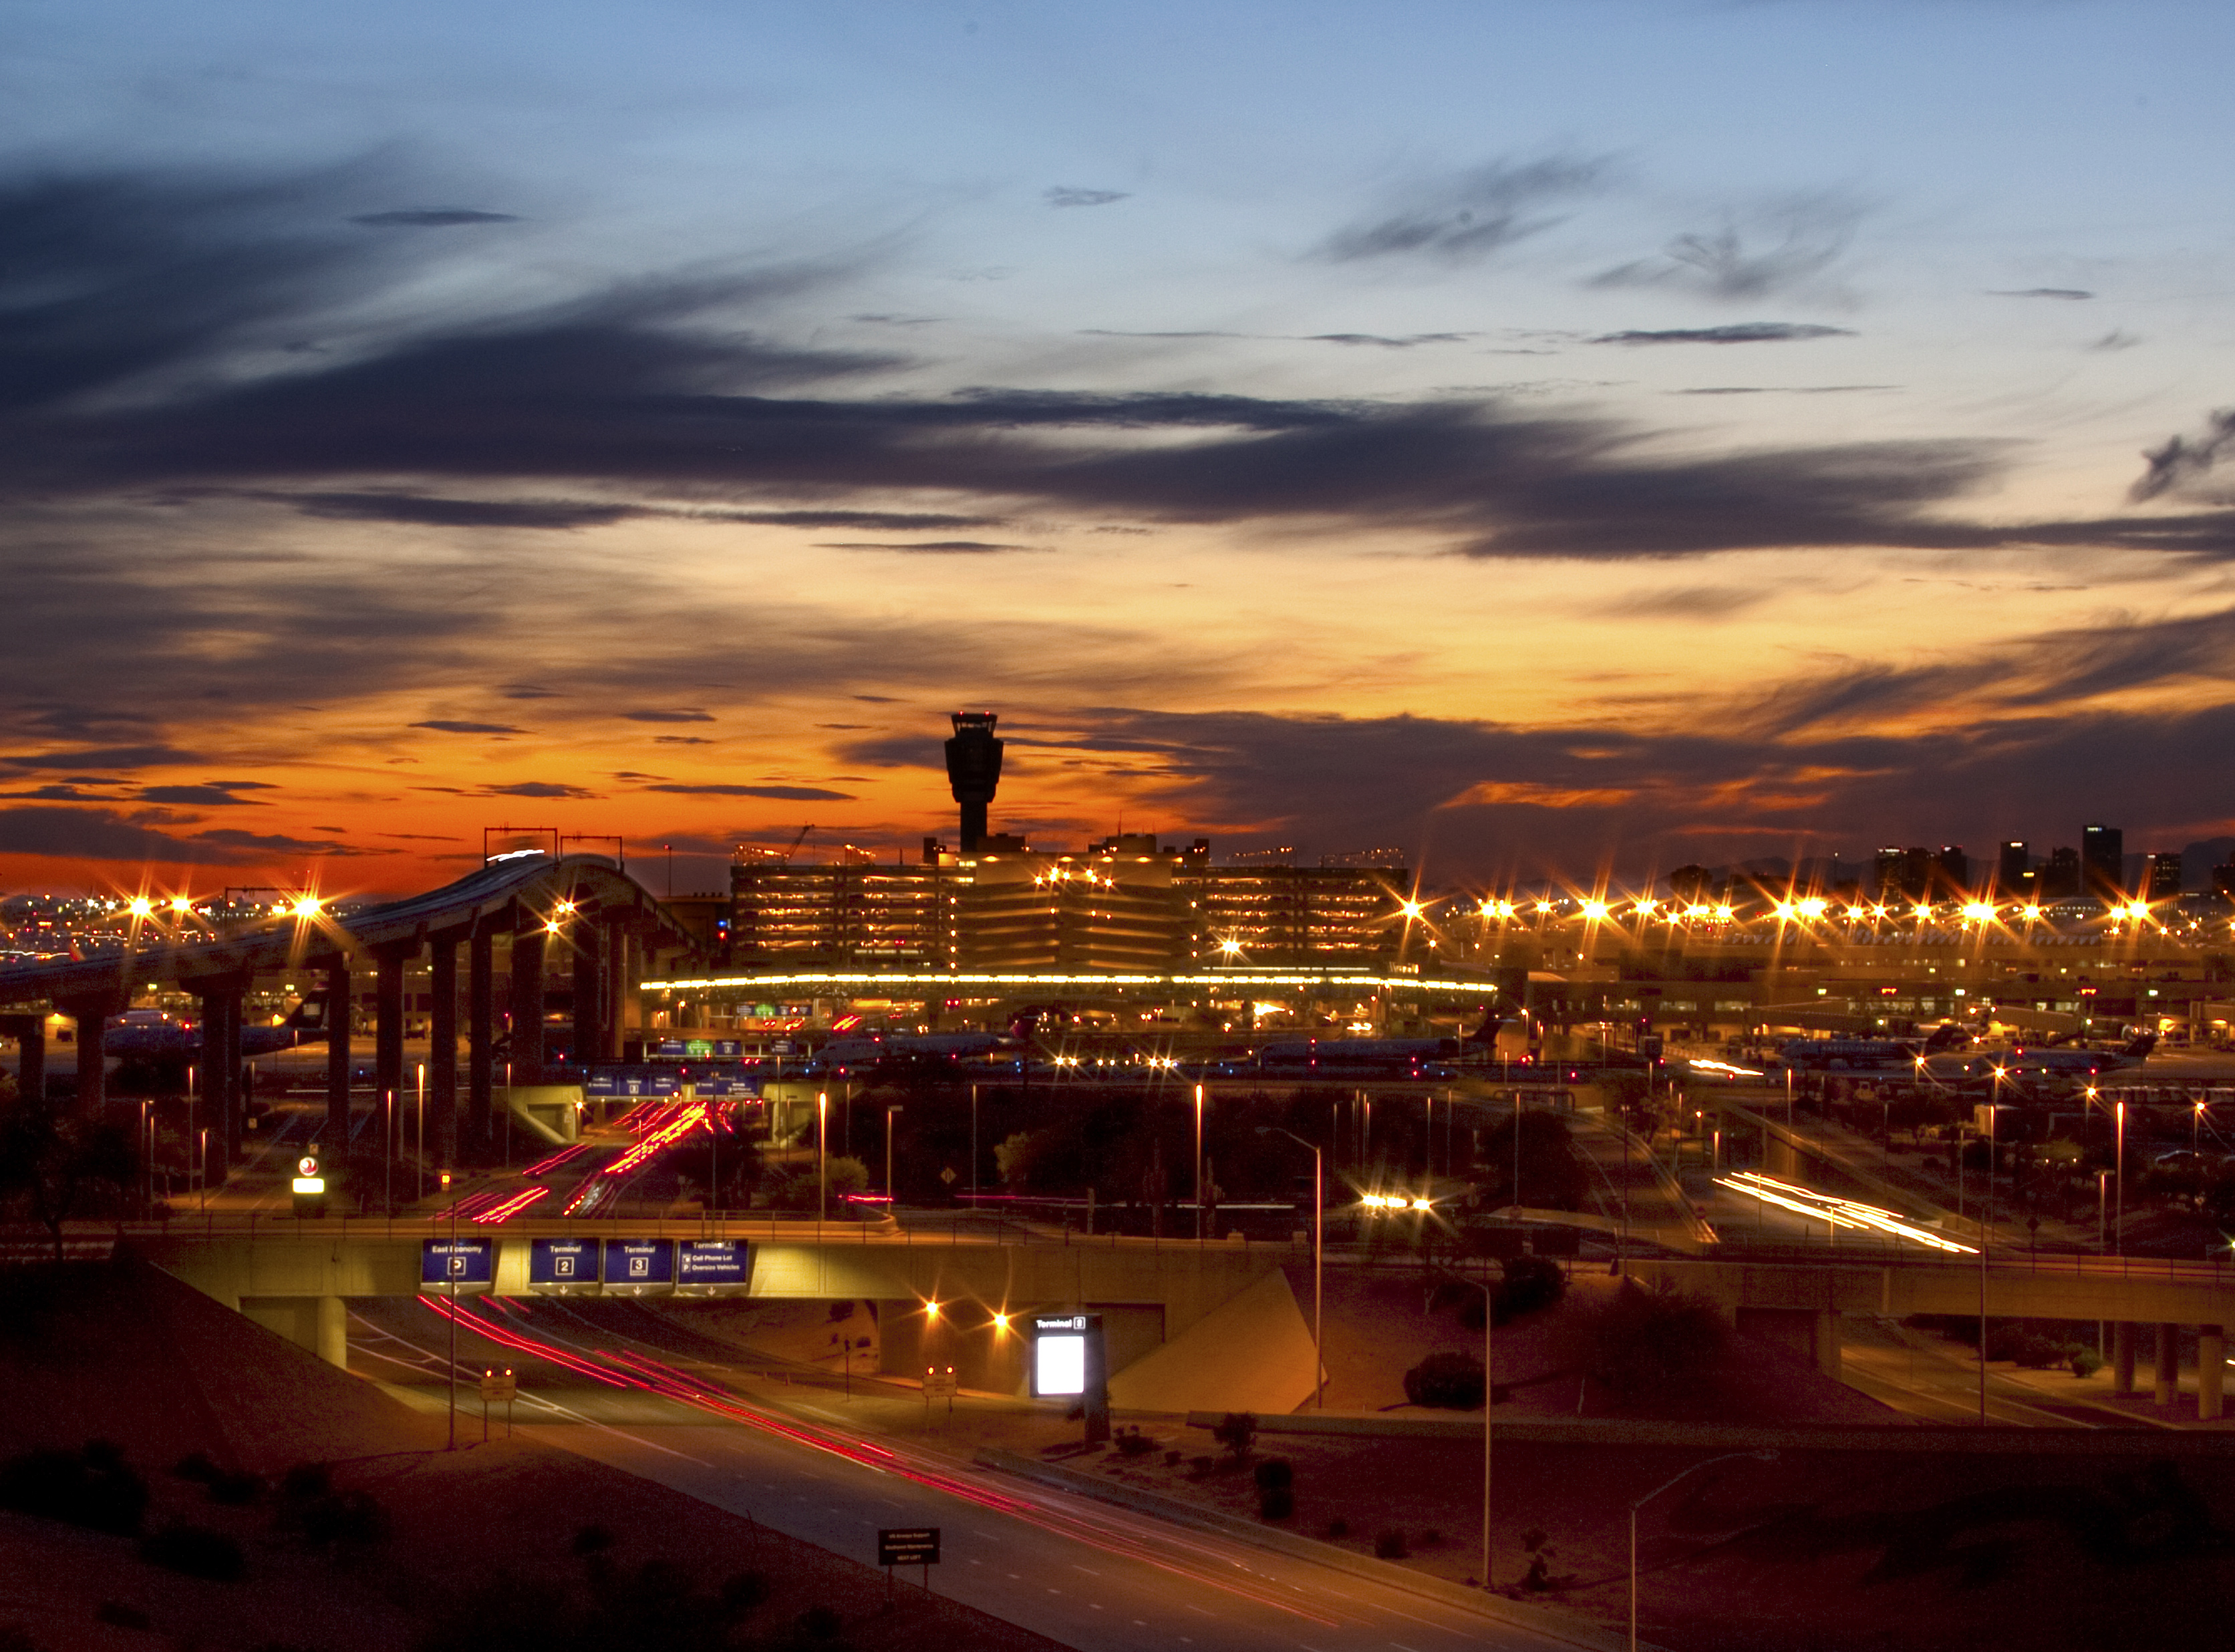 Sky Harbor International Airport at night time.